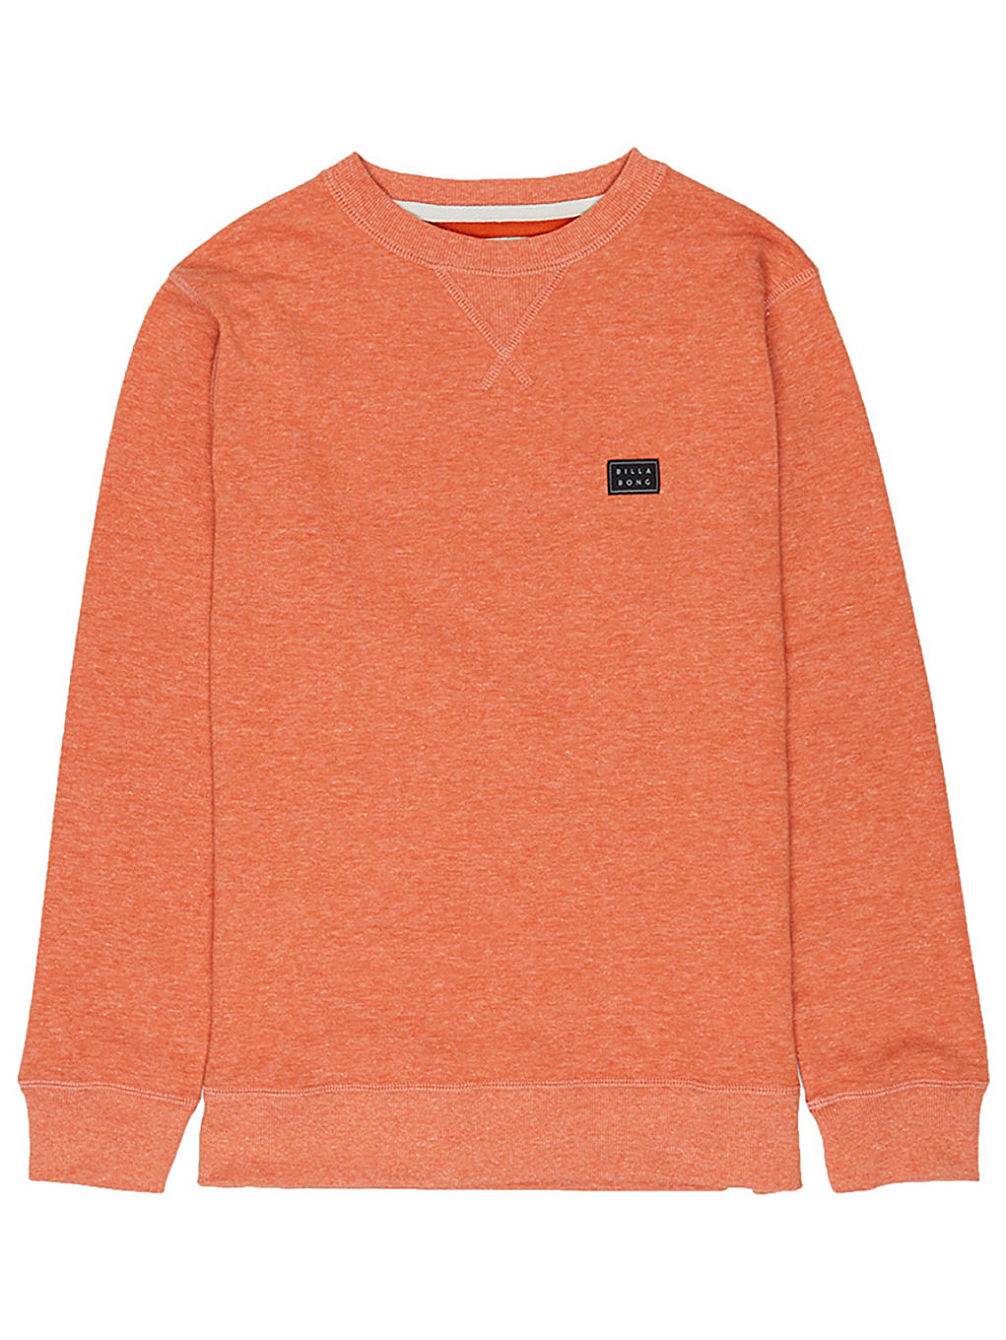 All Day Crew Sweater Boys